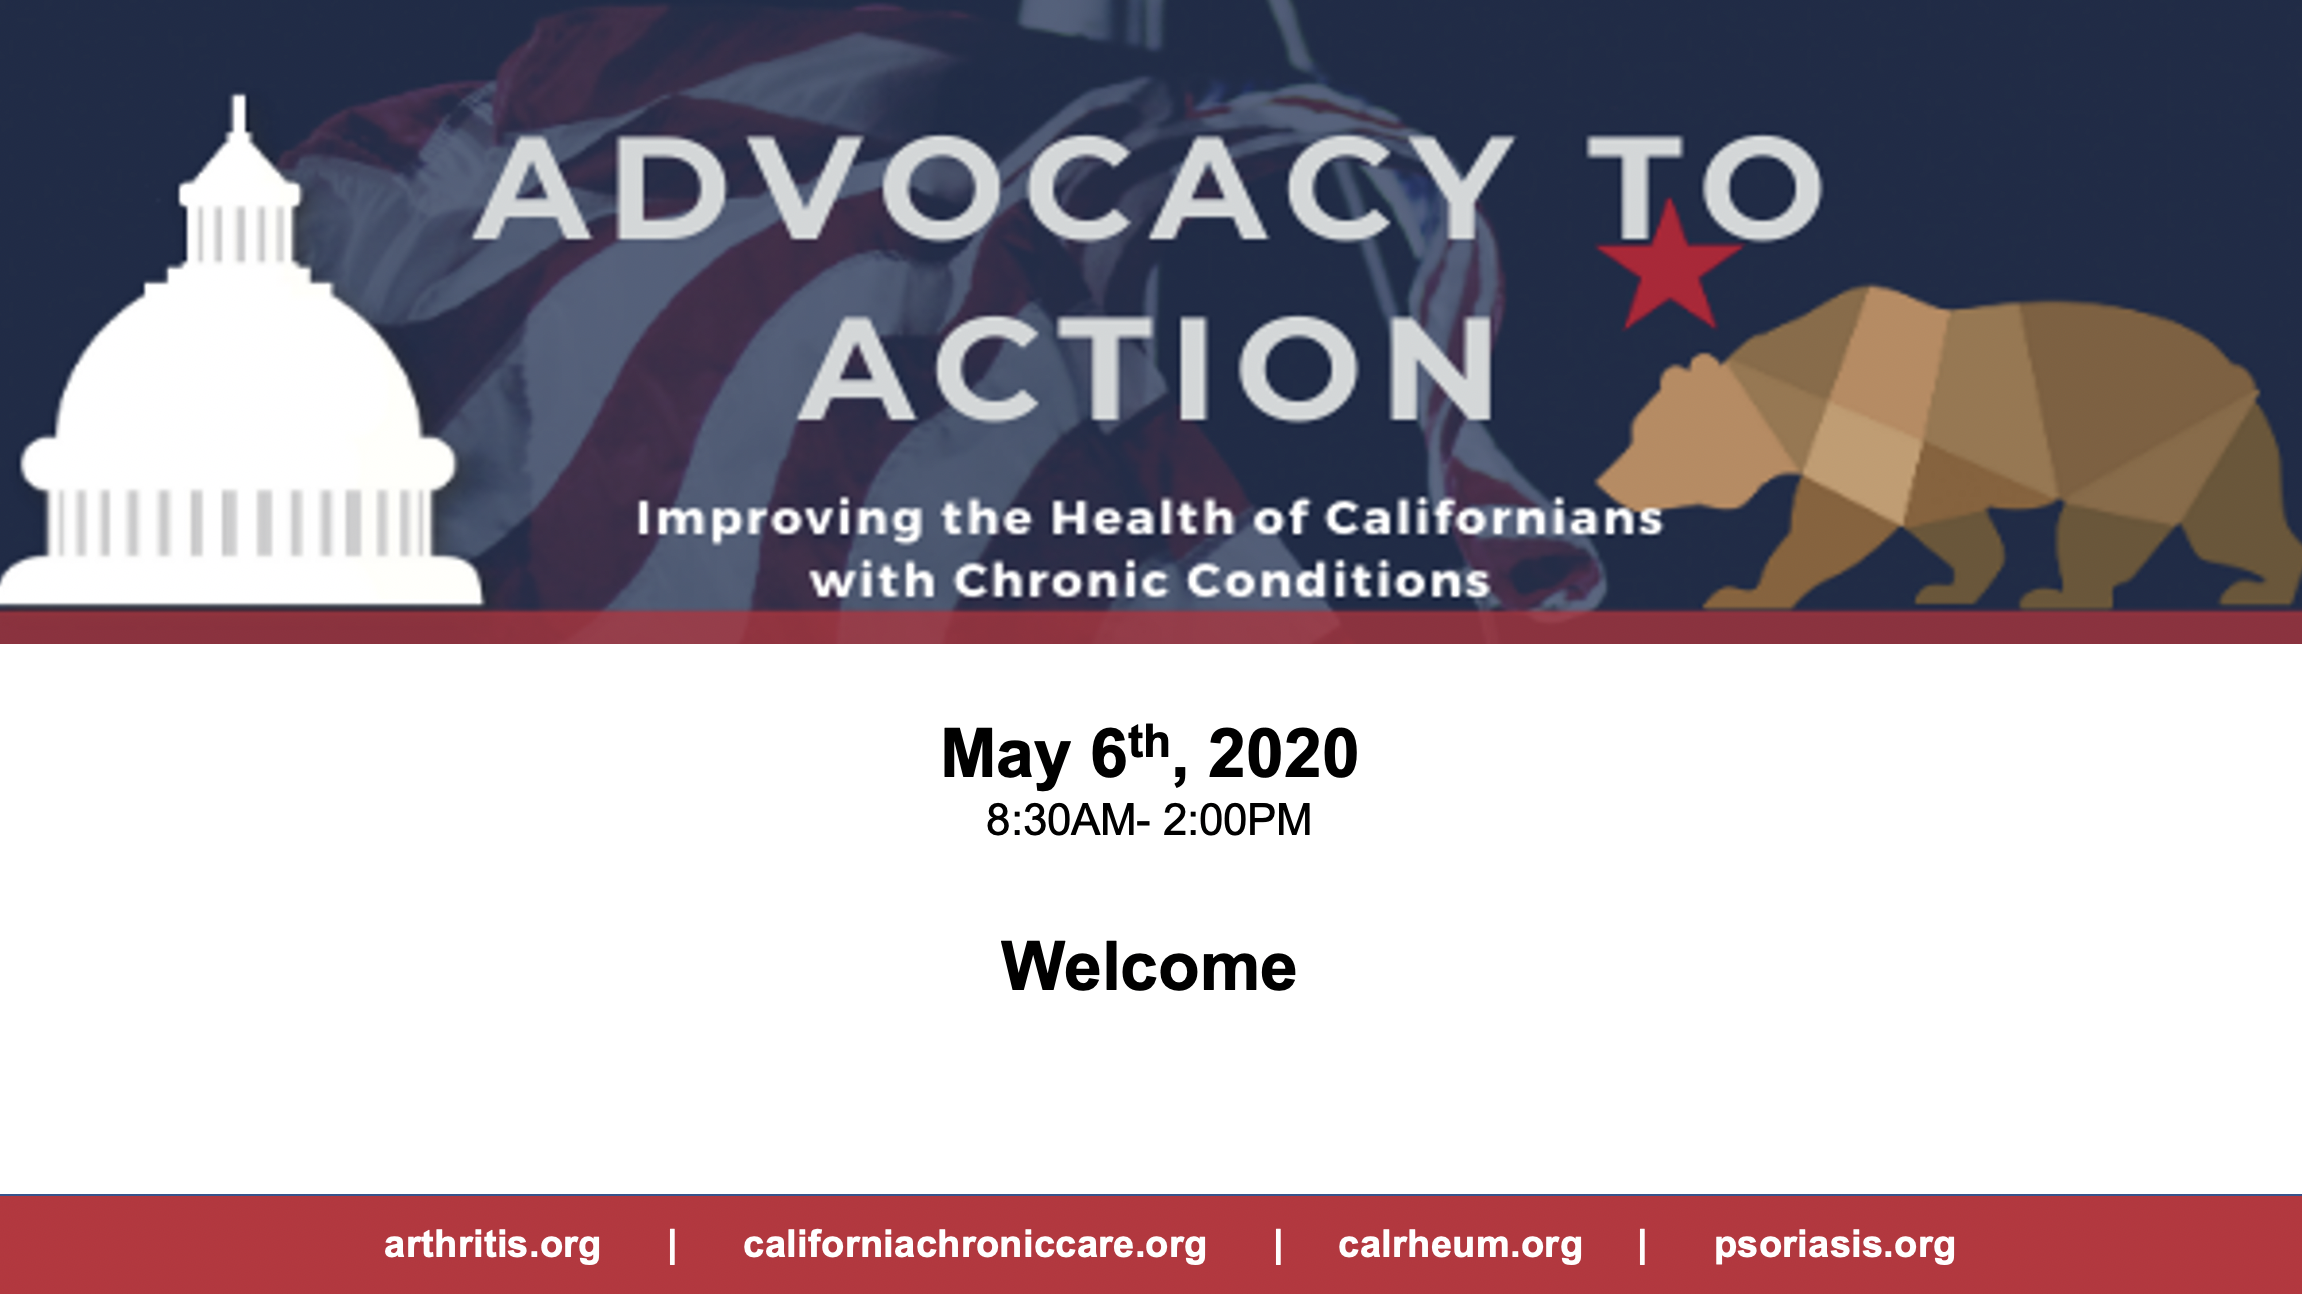 Advocacy to Action Combined Chronic Disease Advocacy Day